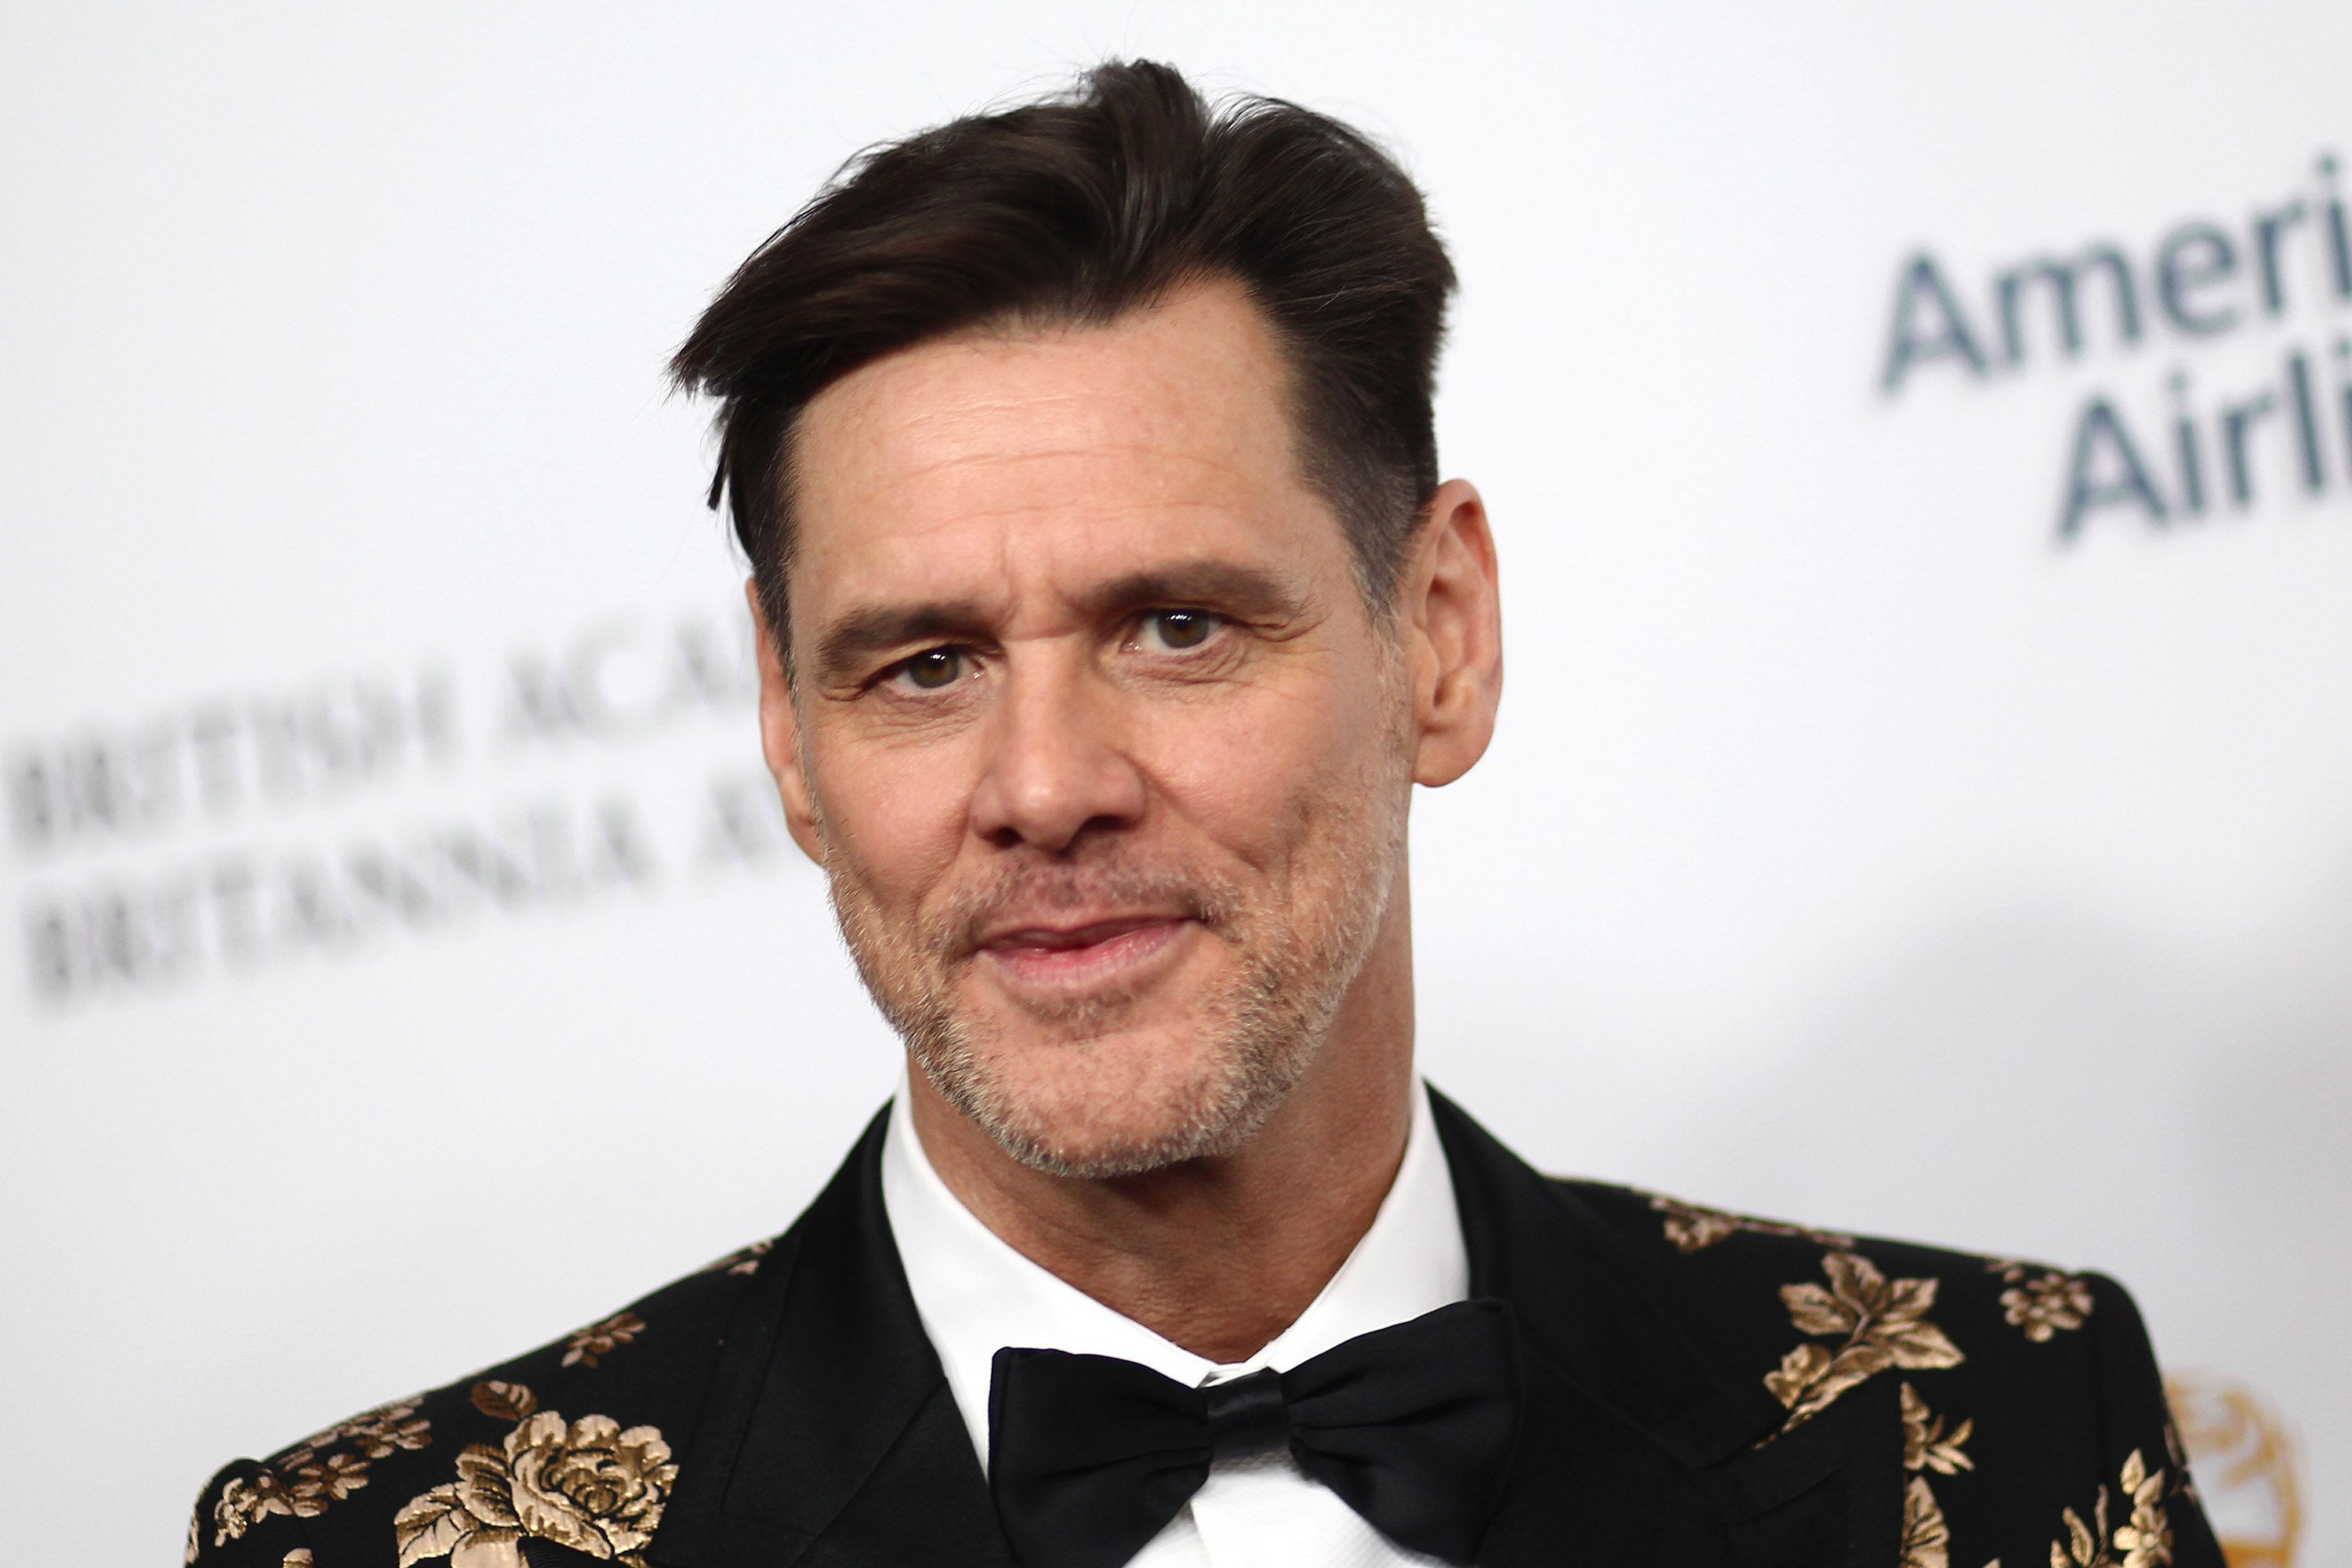 BEVERLY HILLS, CA - OCTOBER 26:  Jim Carrey attends the 2018 British Academy Britannia Awards presented by Jaguar Land Rover and American Airlines at The Beverly Hilton Hotel on October 26, 2018 in Beverly Hills, California.  (Photo by Tommaso Boddi/FilmMagic,)